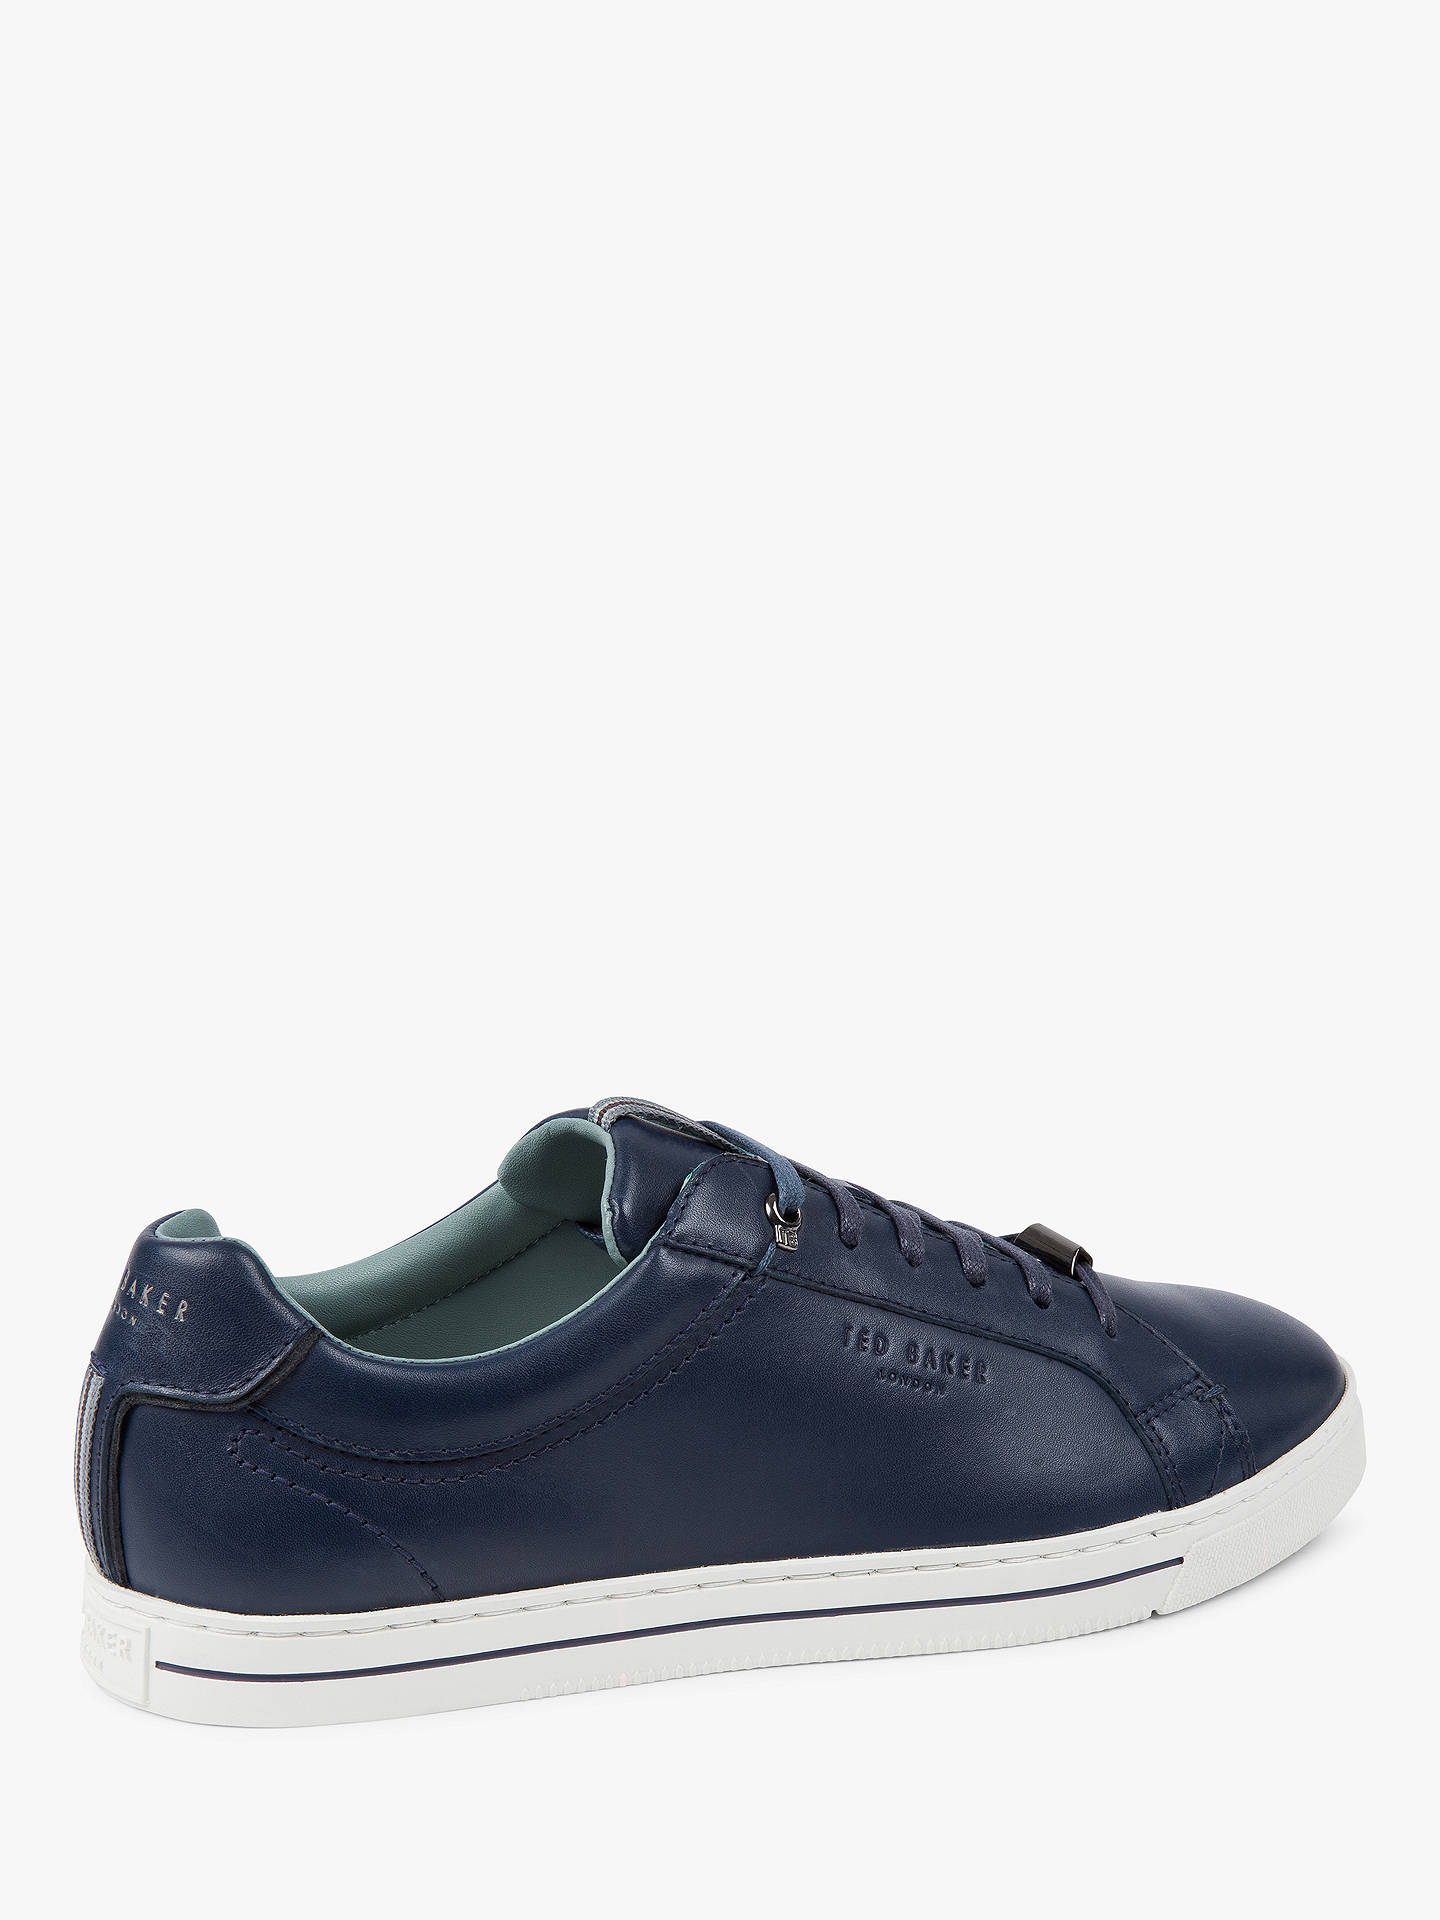 BuyTed Baker Thawne Trainers, Blue, 8 Online at johnlewis.com